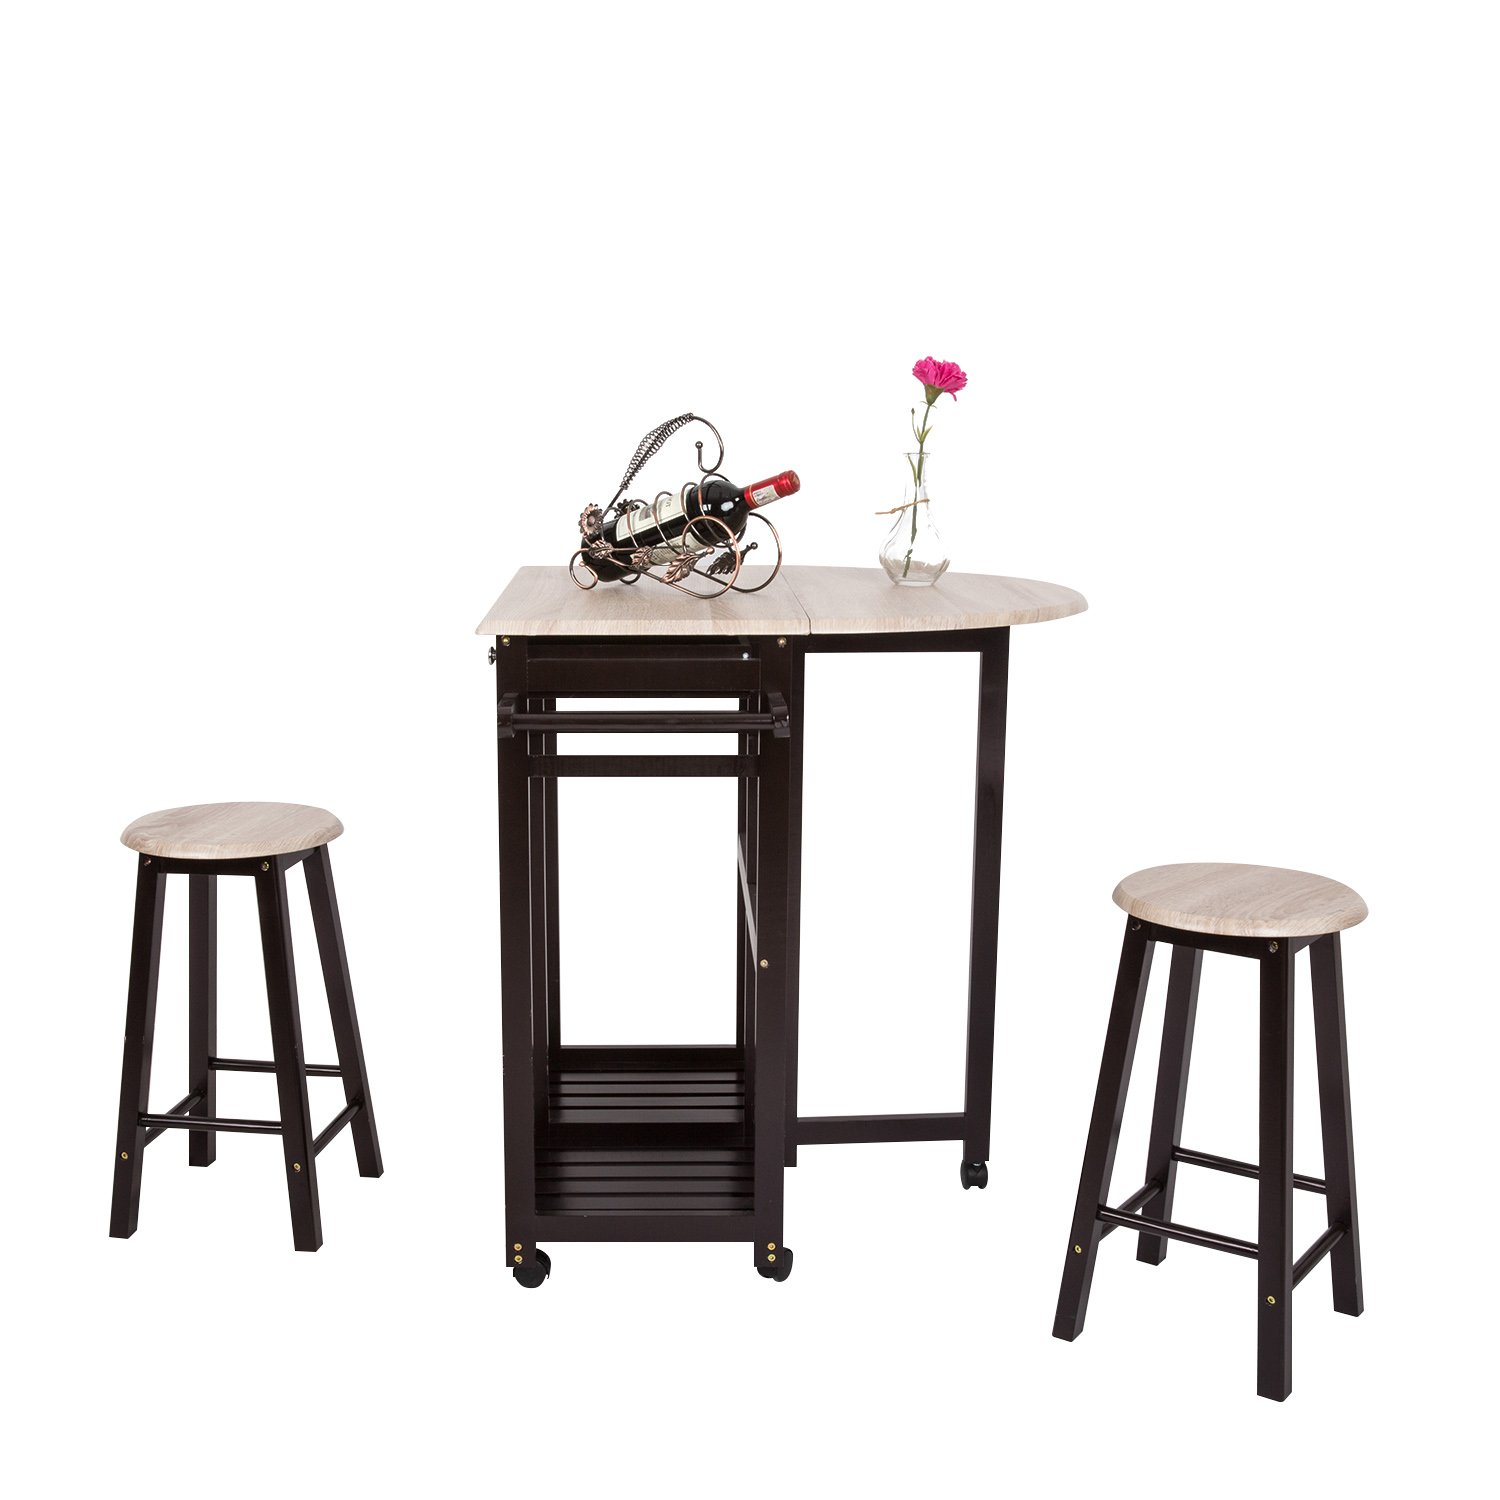 3PCS Dinning Set Table Rolling Kitchen Island Trolley Cart Set Breakfast Bar Cart Drop-Leaf Folding Table w/2 Stools and 2 Drawers Guangbo